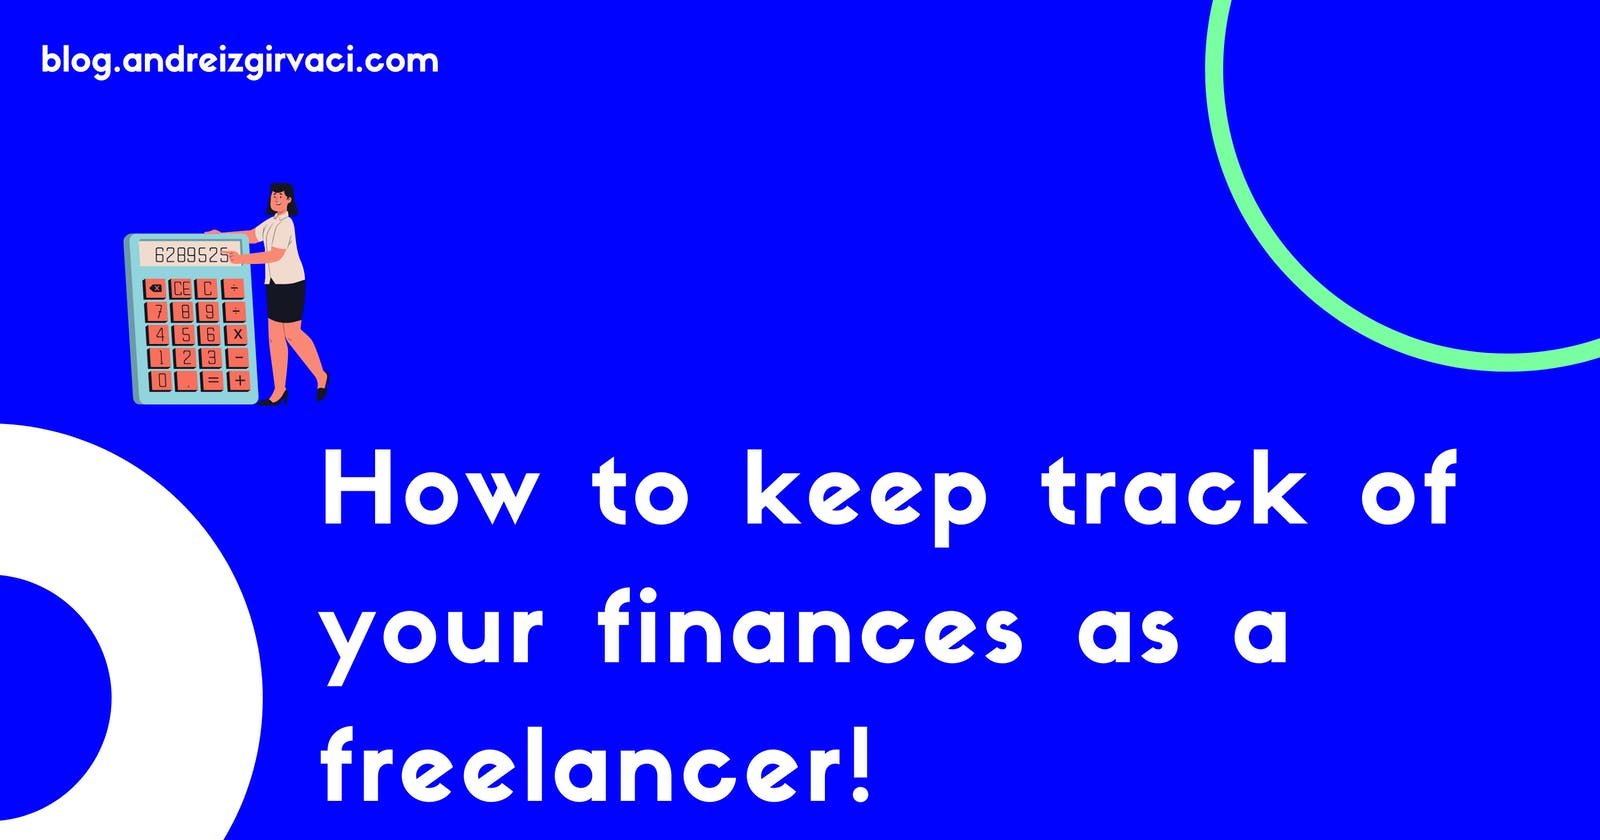 How to keep track of your finances as a freelancer! 💵